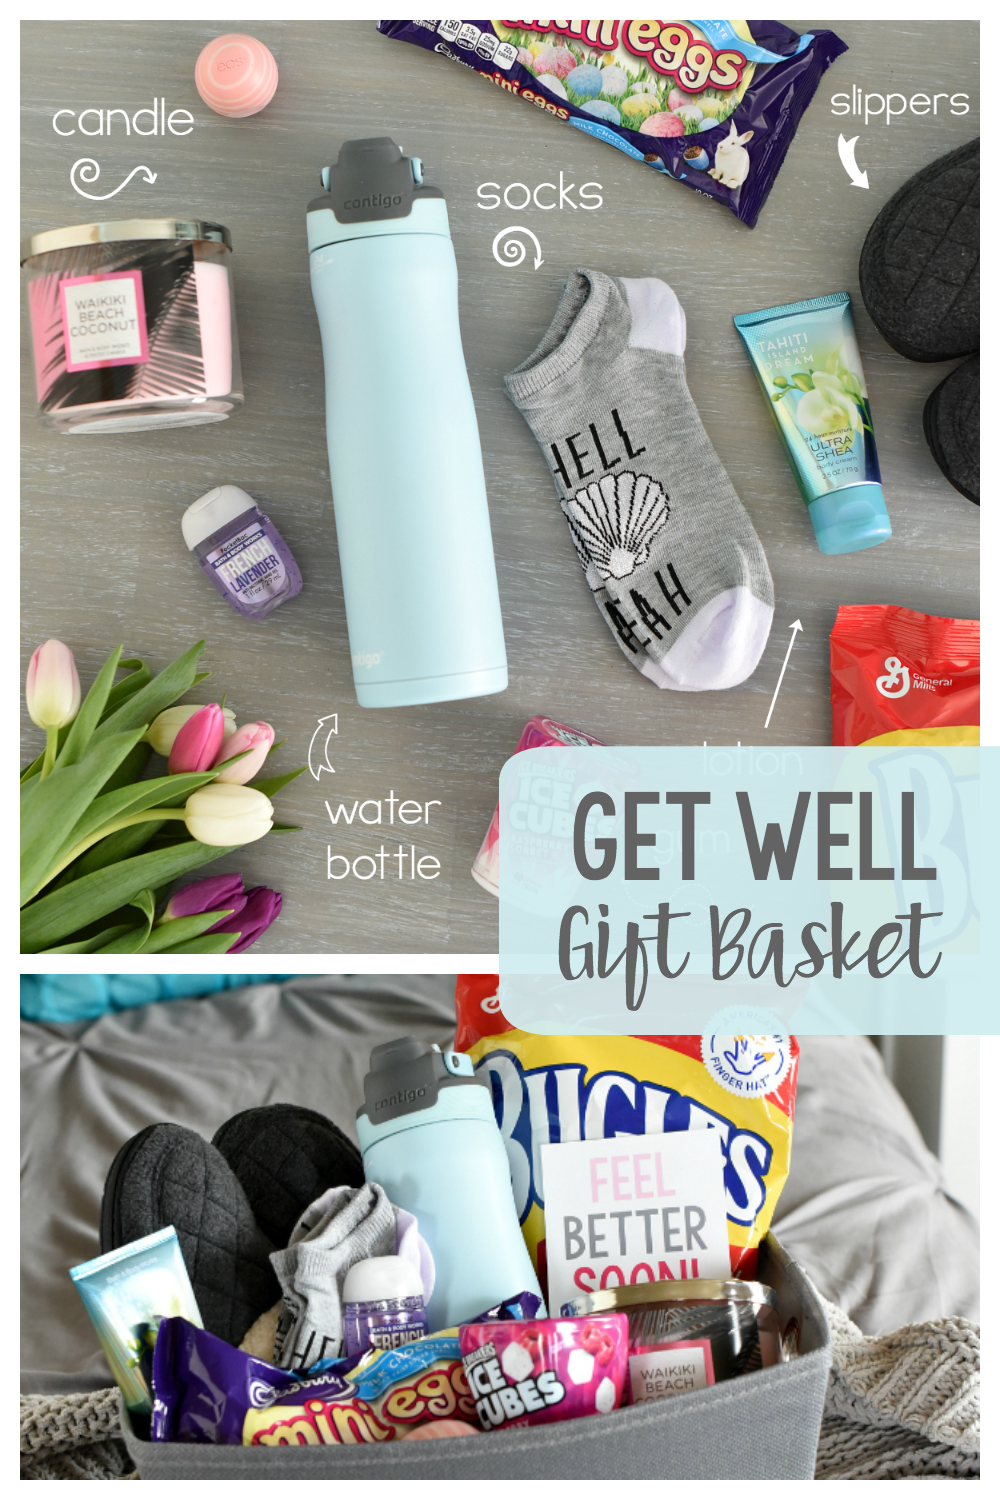 This Get Well Soon Gift Basket will brighten a friend's day if she is feeling sick or recovering from surgery. We've got ideas of what to put in the basket and free printable tags. #getwellsoon #giftbaskets #giftbasketideas